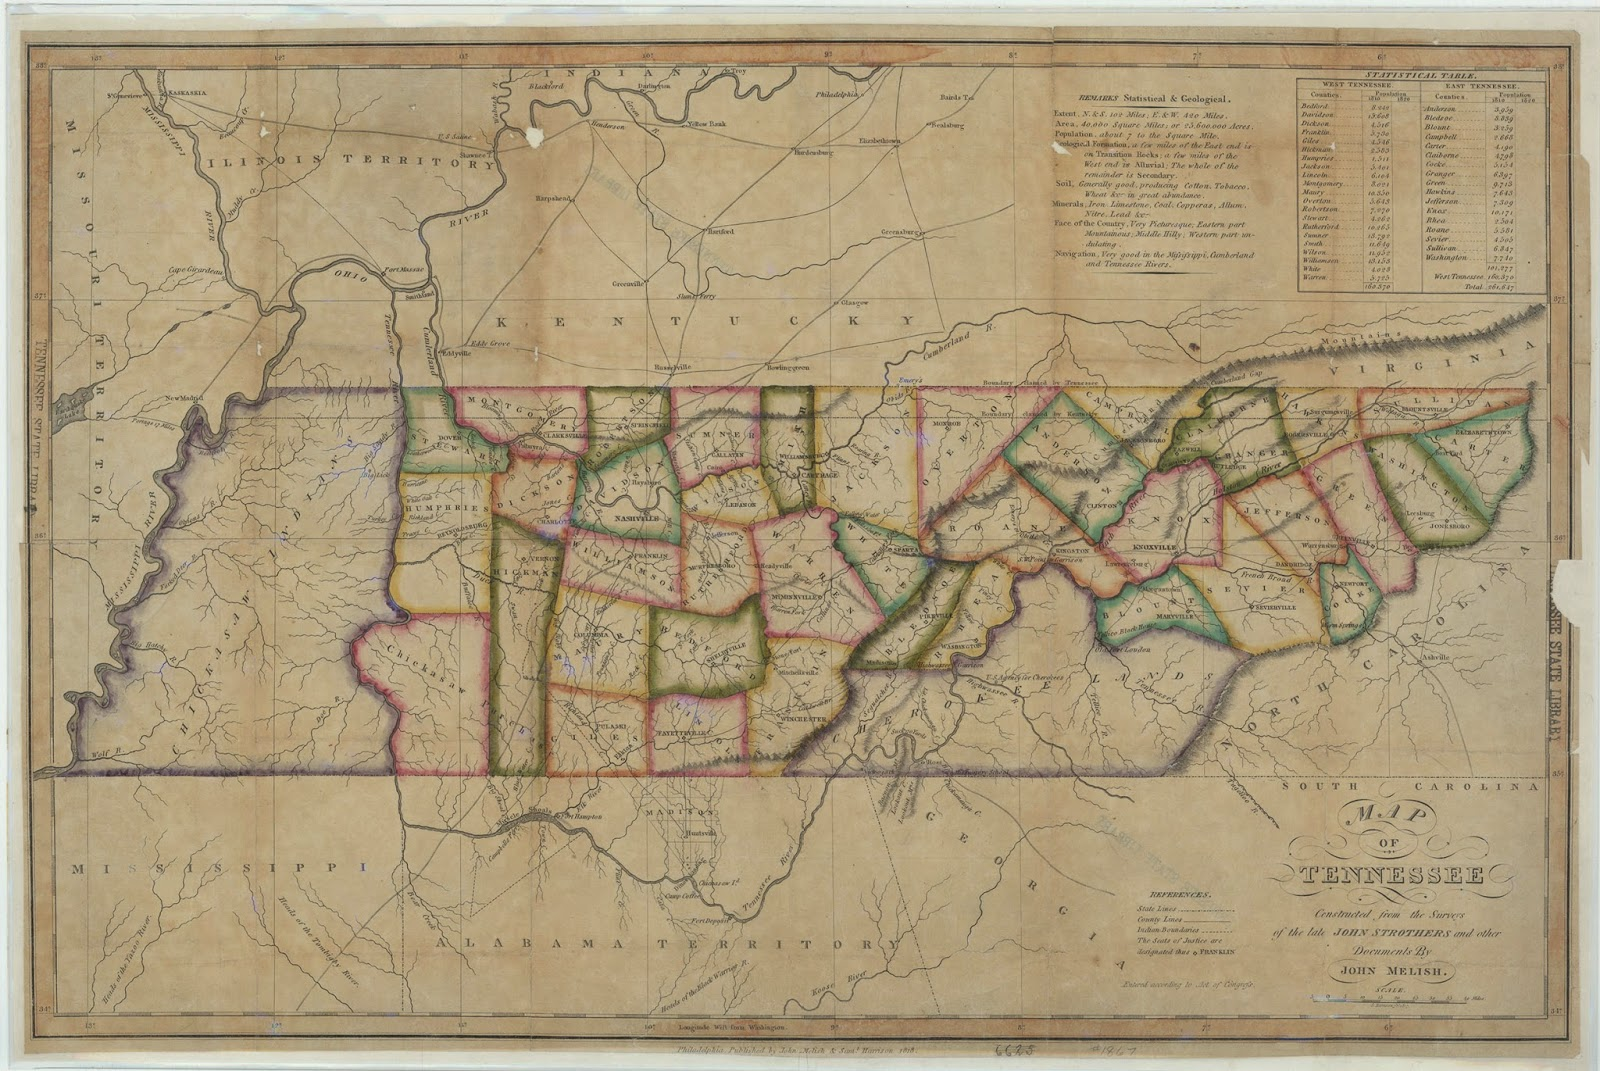 Library Amp Archives News The Tennessee State Library And